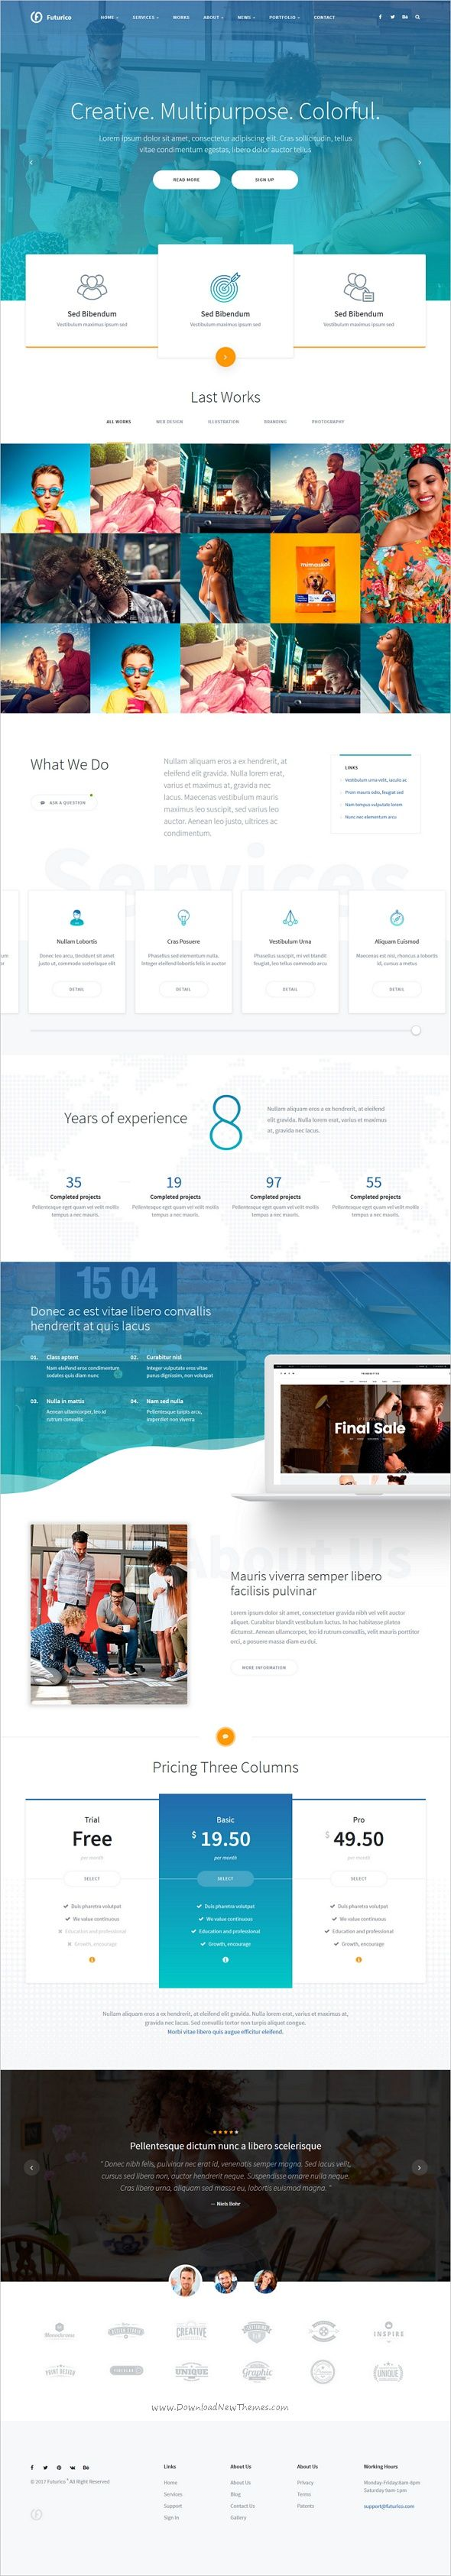 Fururico is clean and modern design 2in1 responsive HTML #bootstrap template for #webdesign multipurpose corporate #business websites download now➩ https://themeforest.net/item/futurico-multipurpose-html-template/19269302?ref=Datasata